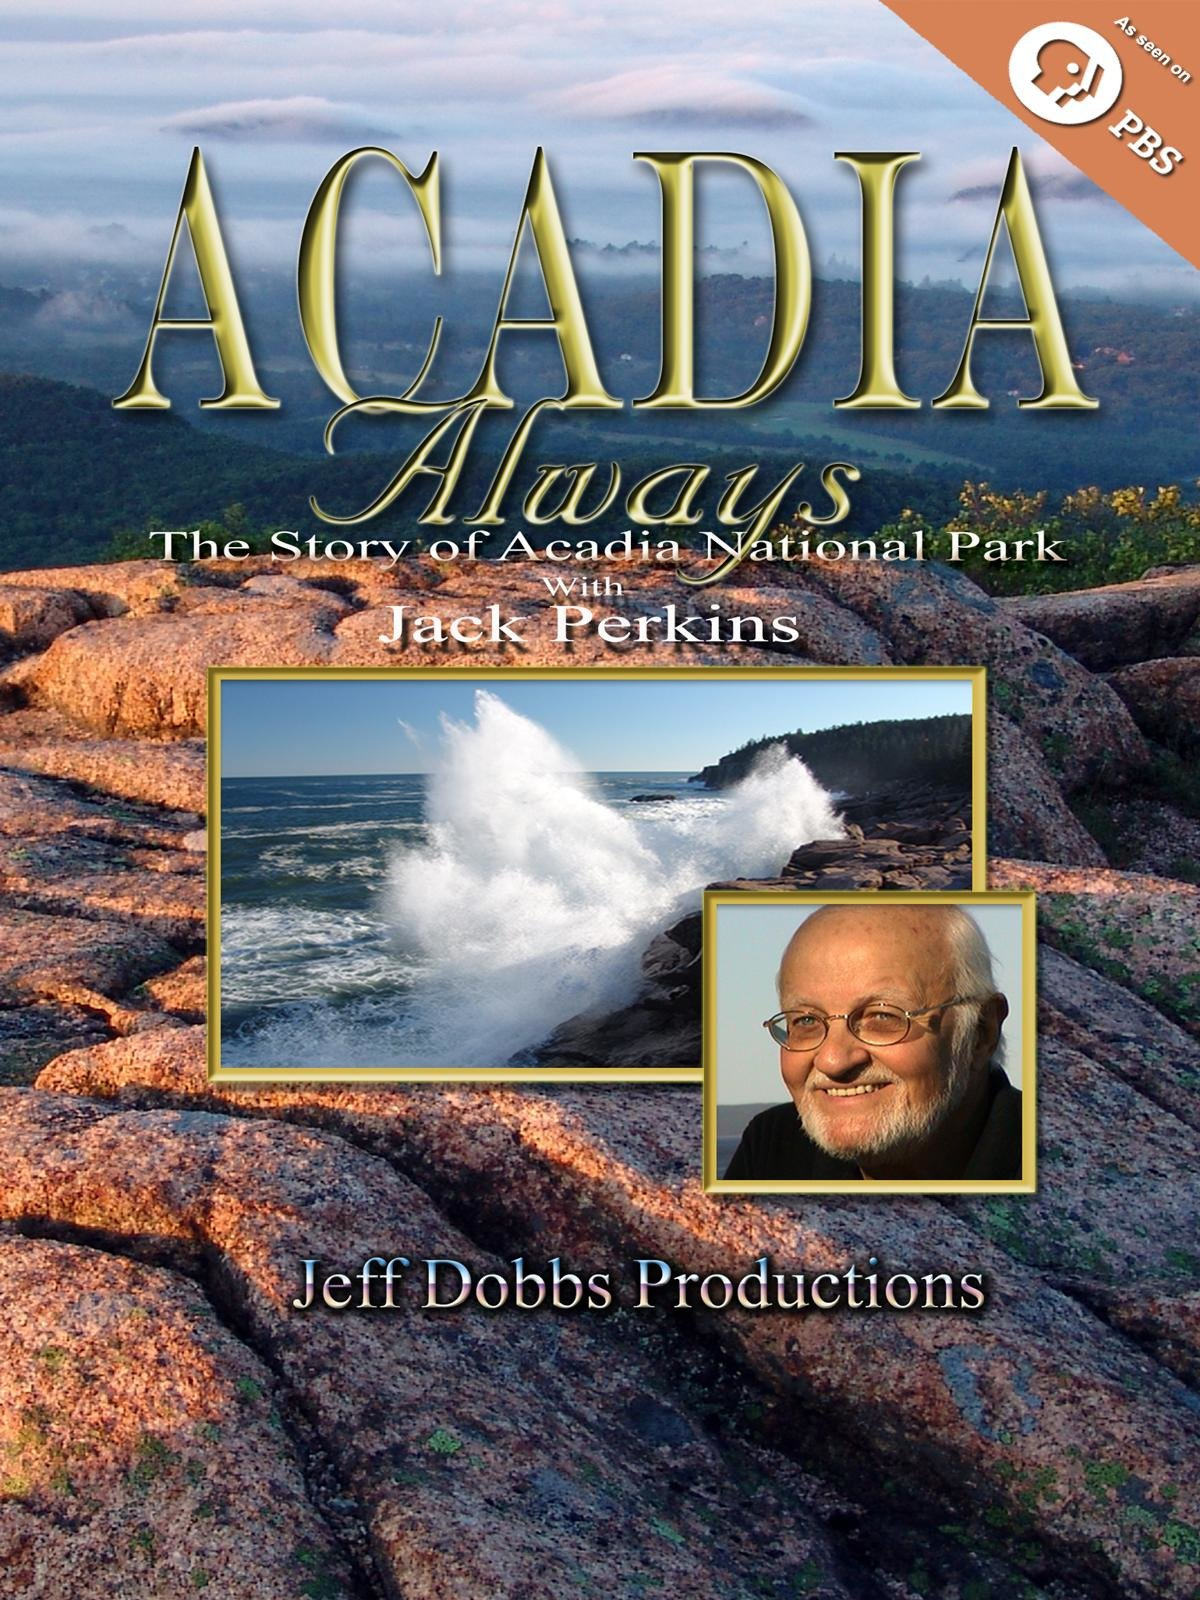 Acadia Always, The Story of Acadia National Park on Amazon Prime Video UK